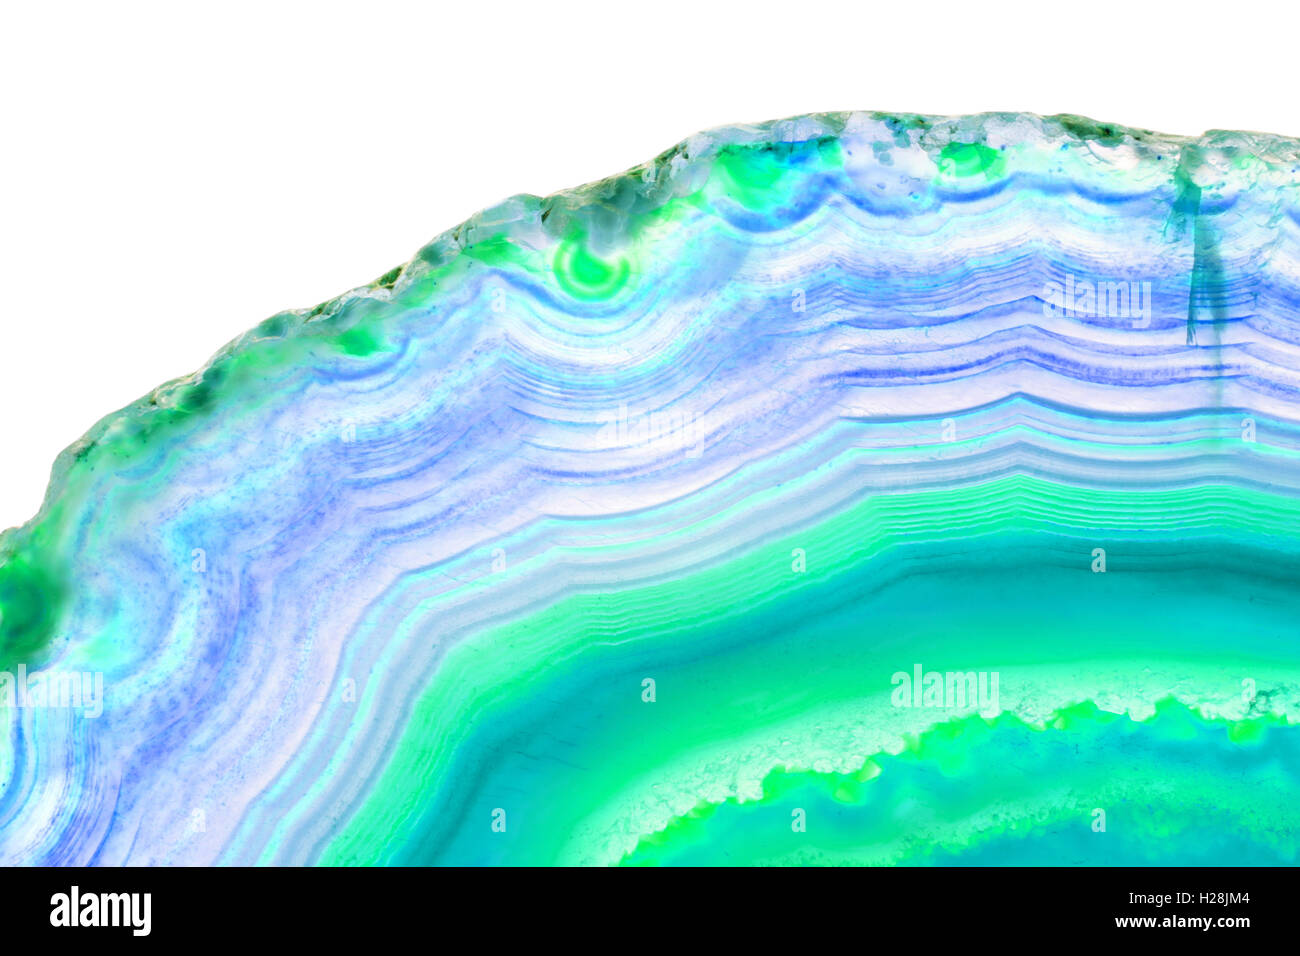 Abstract Background Blue Agate Slice Mineral Stock Photo